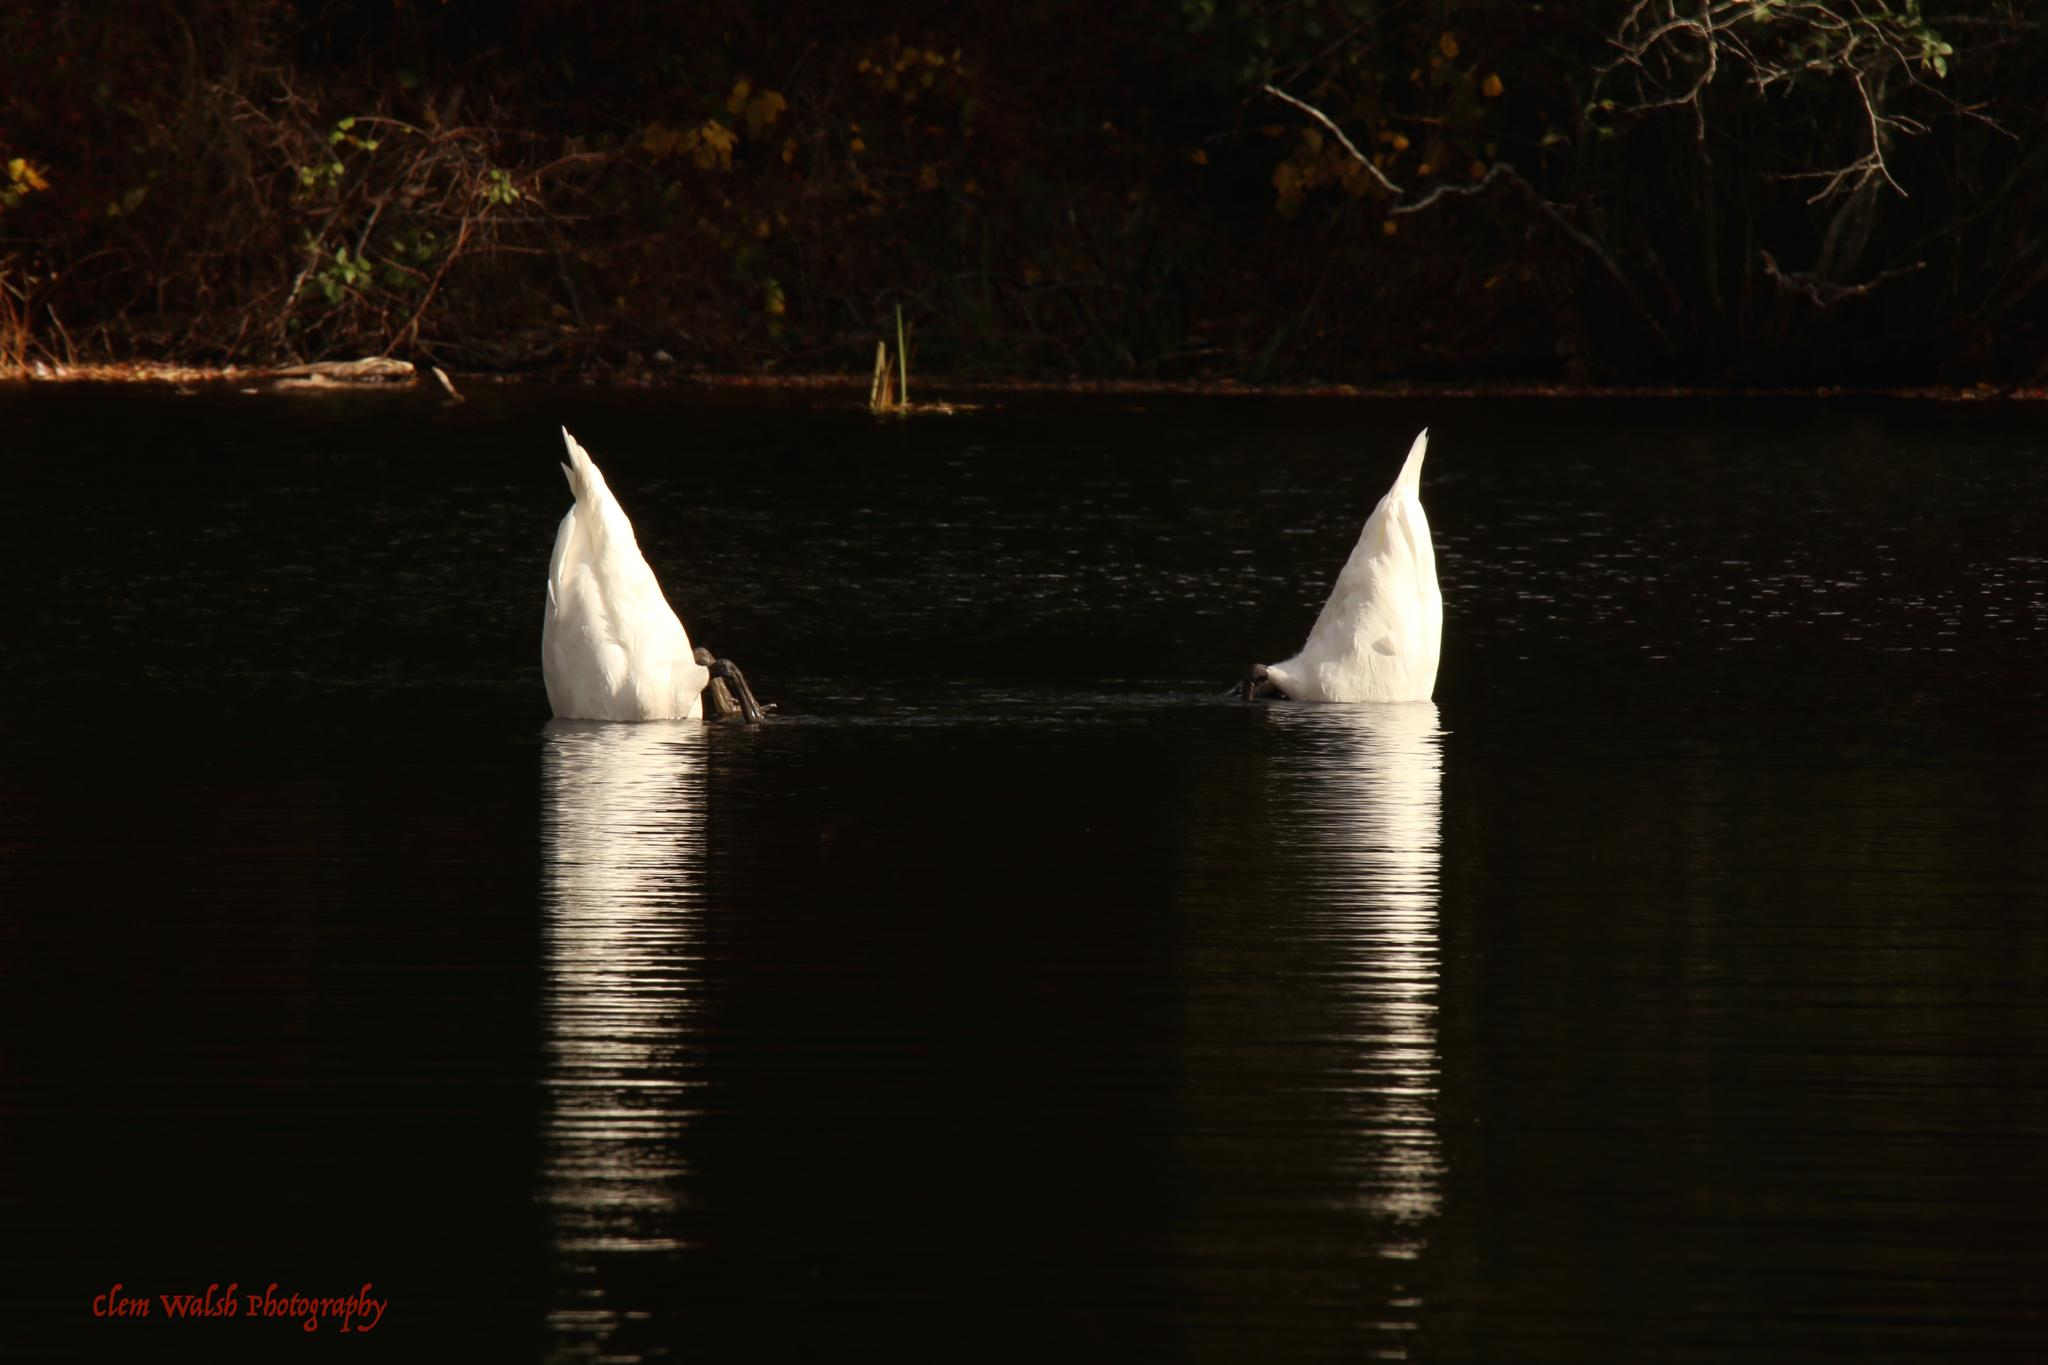 Synchronized Swimming by Clem Walsh Photography